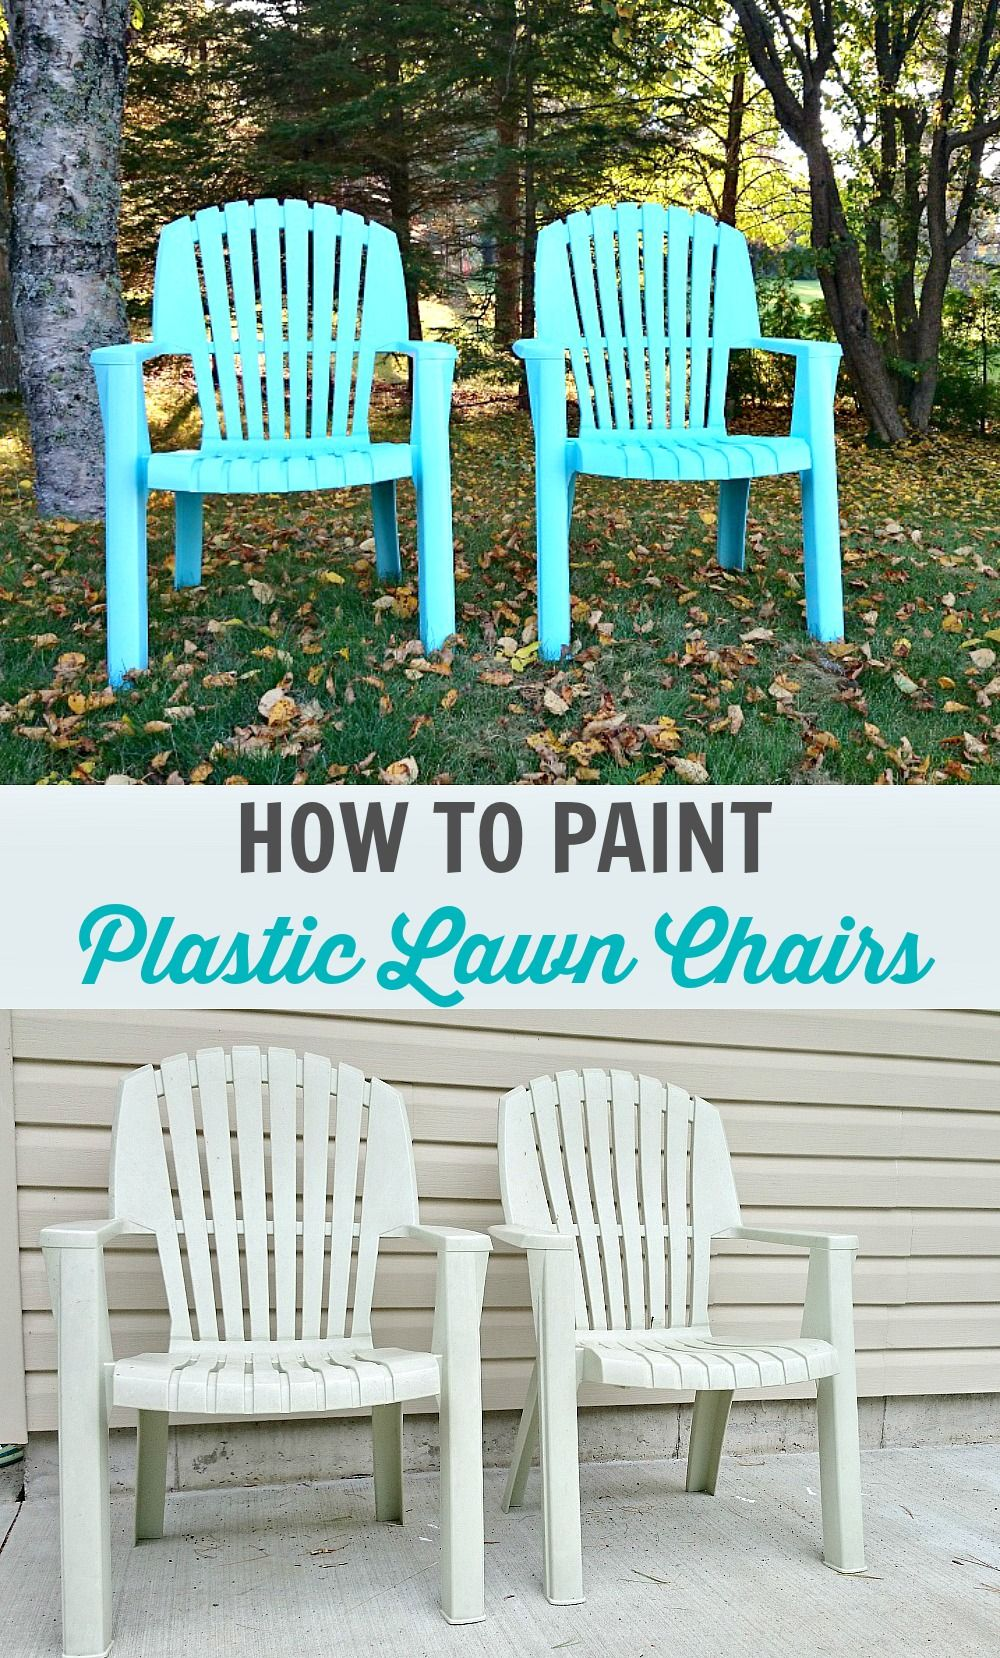 How To Spray Paint Plastic Lawn Chairs Spray Painting Plastic Painting Plastic And Spray Painting